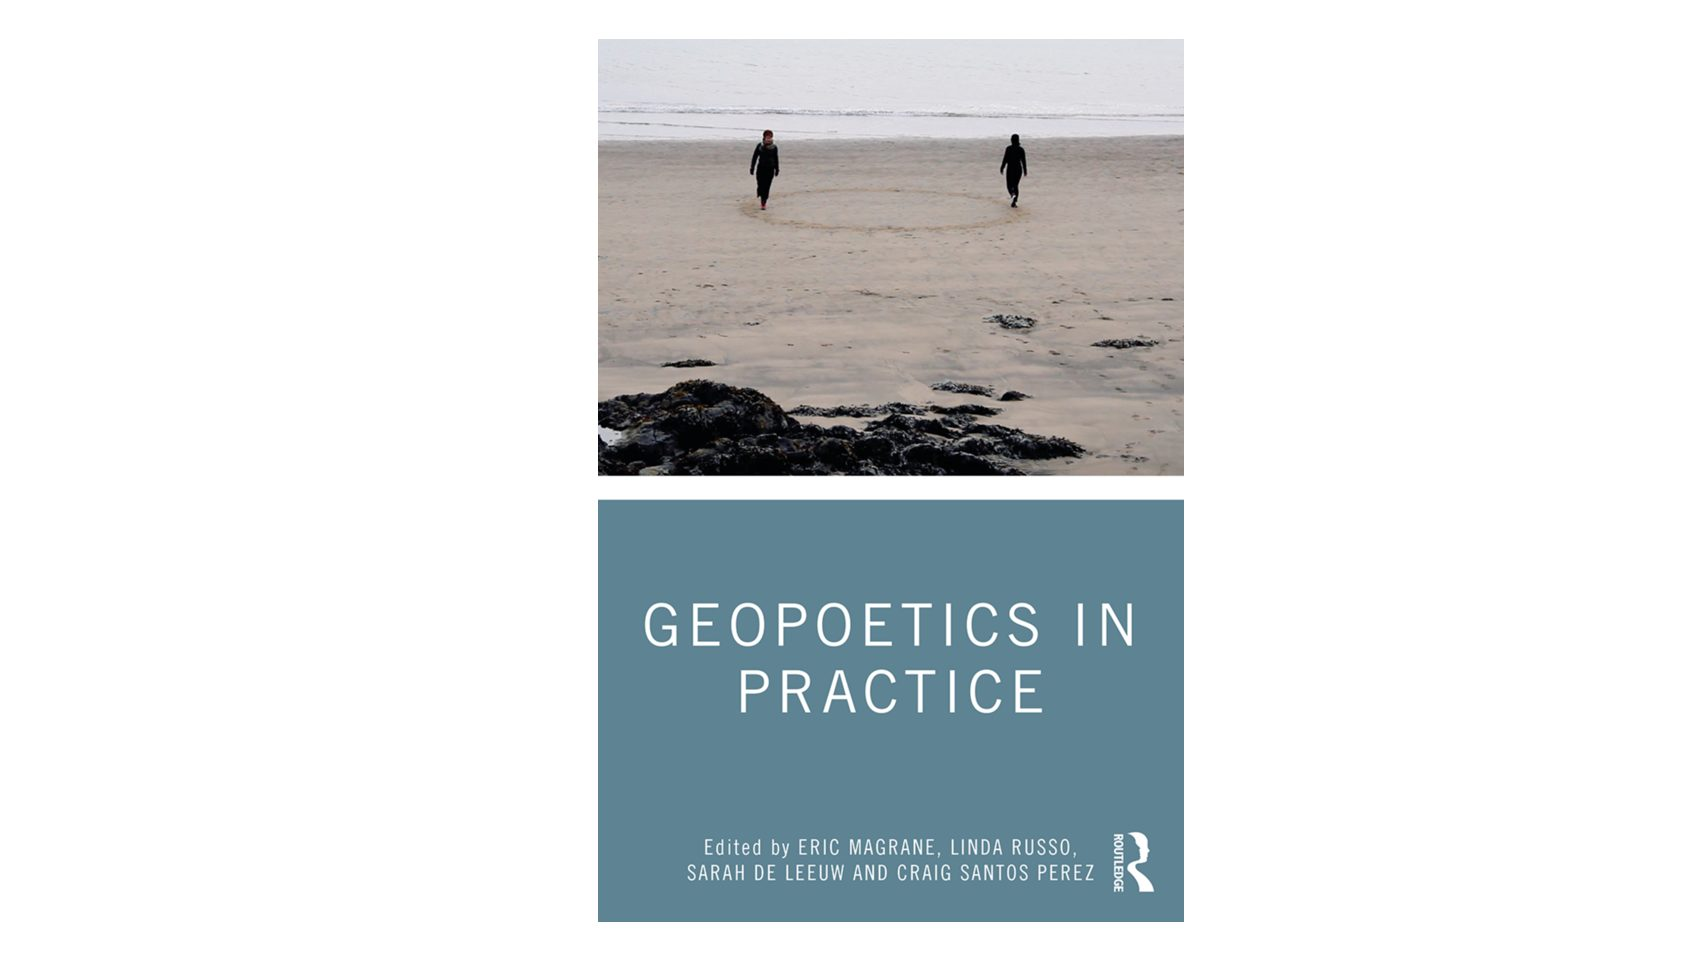 Geopoetics in Practice